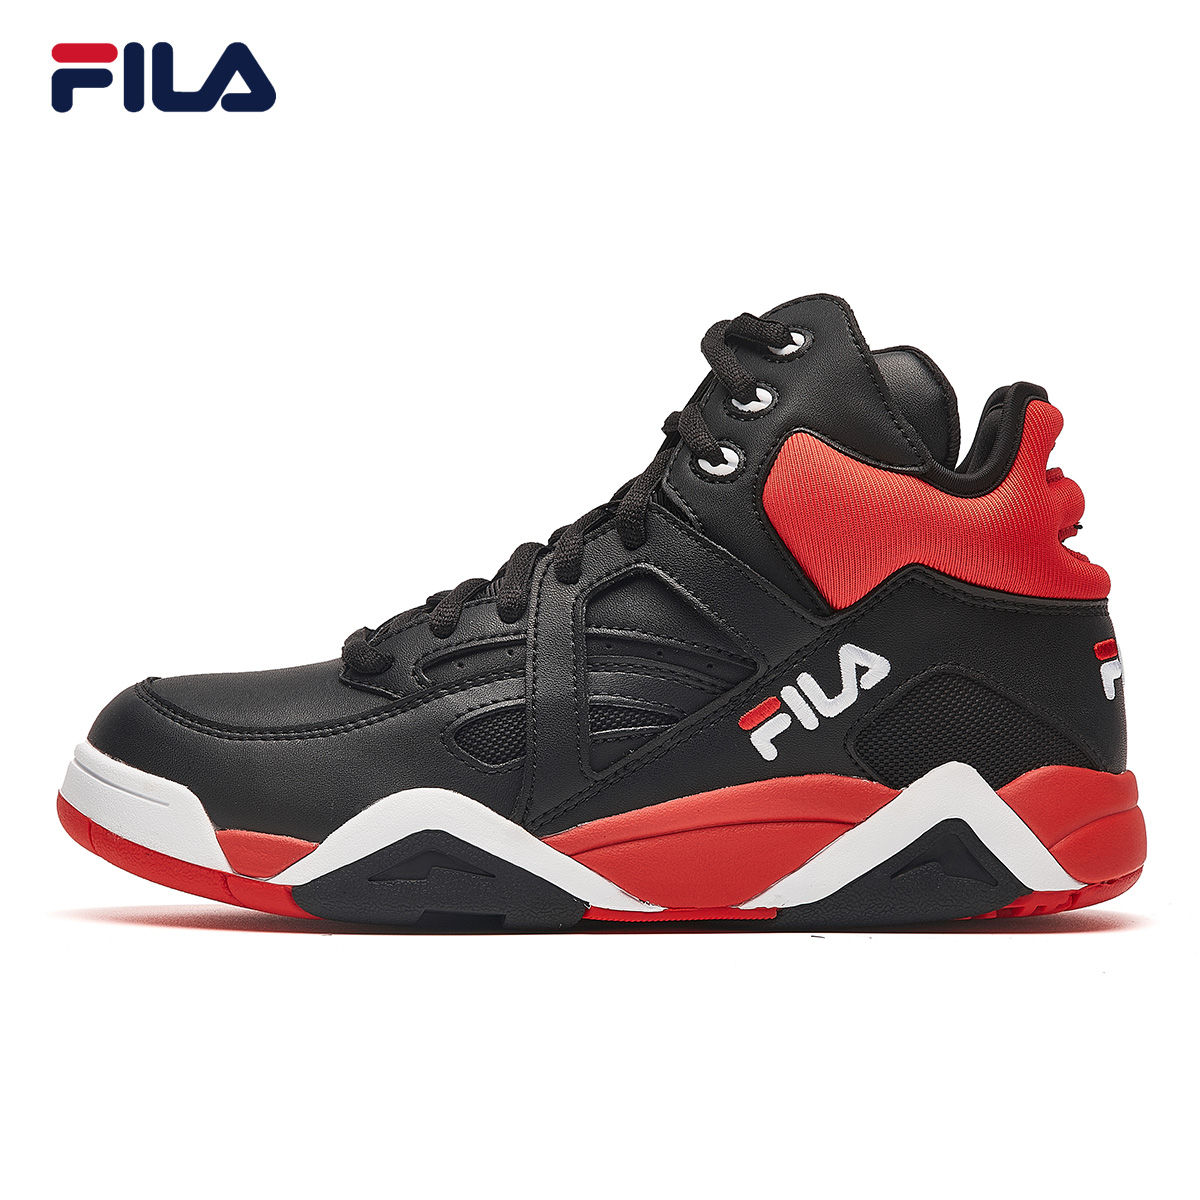 1fila Fei official Women s basketball shoes 2018 Winter new sports shoes  retro culture shoes women s shoes 9d969117a8